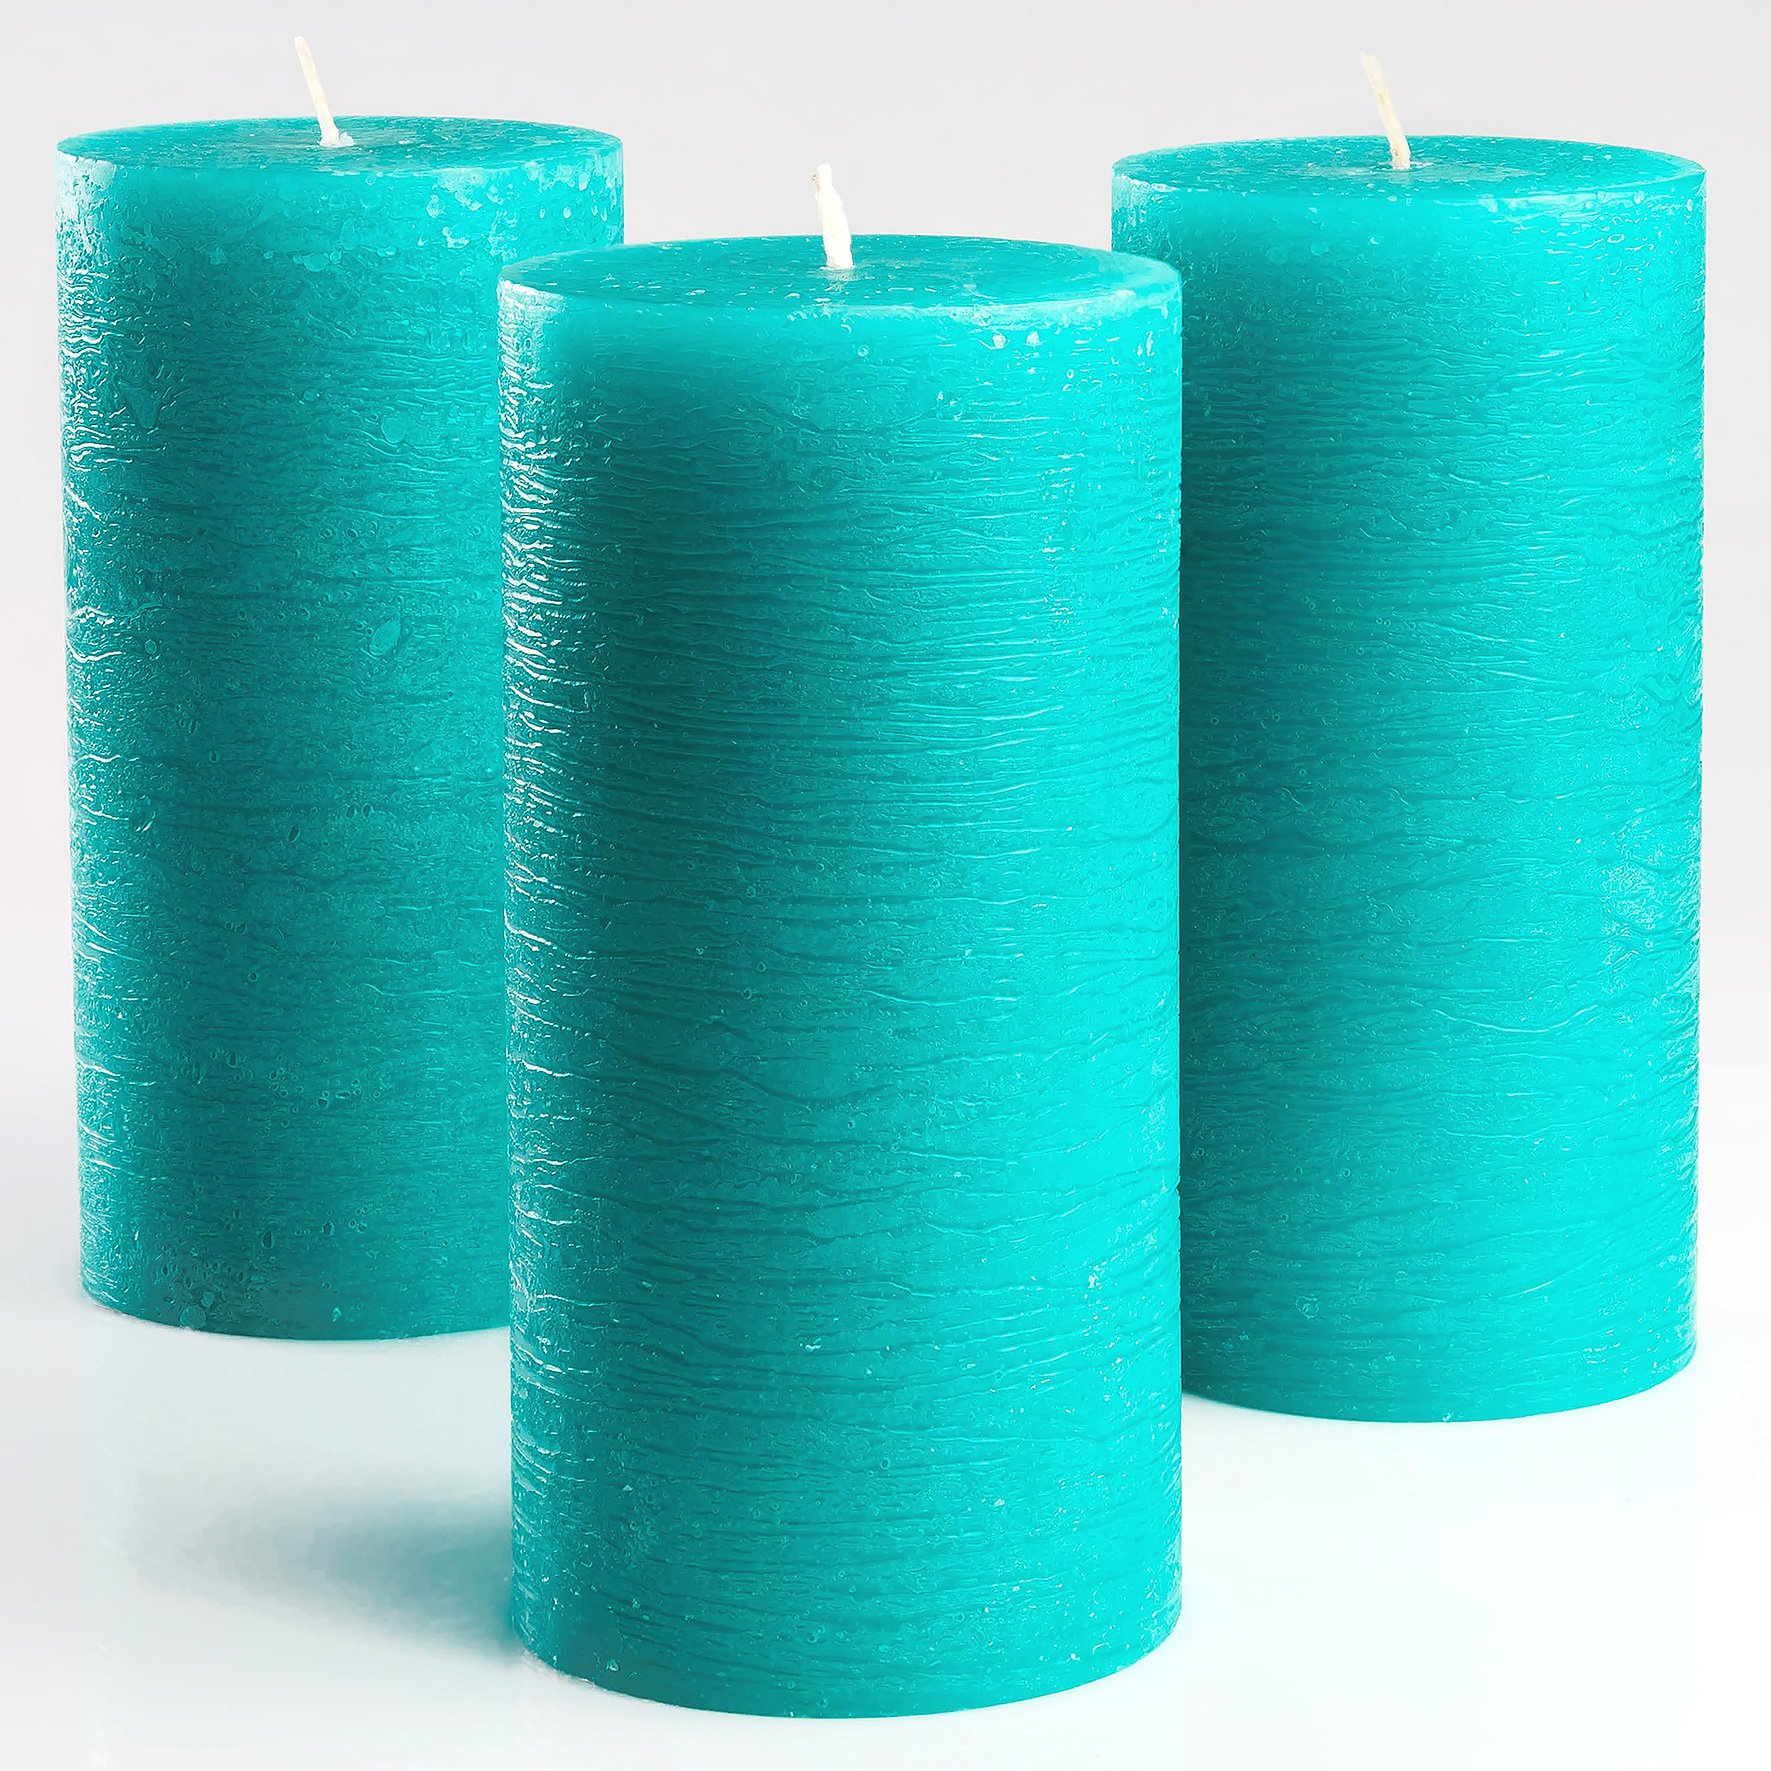 Melt Candle Company Turquoise/Teal Unscented Pillar Candles 3 x 6 inch Set of 3 Fragrance-Free for Weddings, Decoration, Restaurant, Spa, Smokeless Cotton Wick